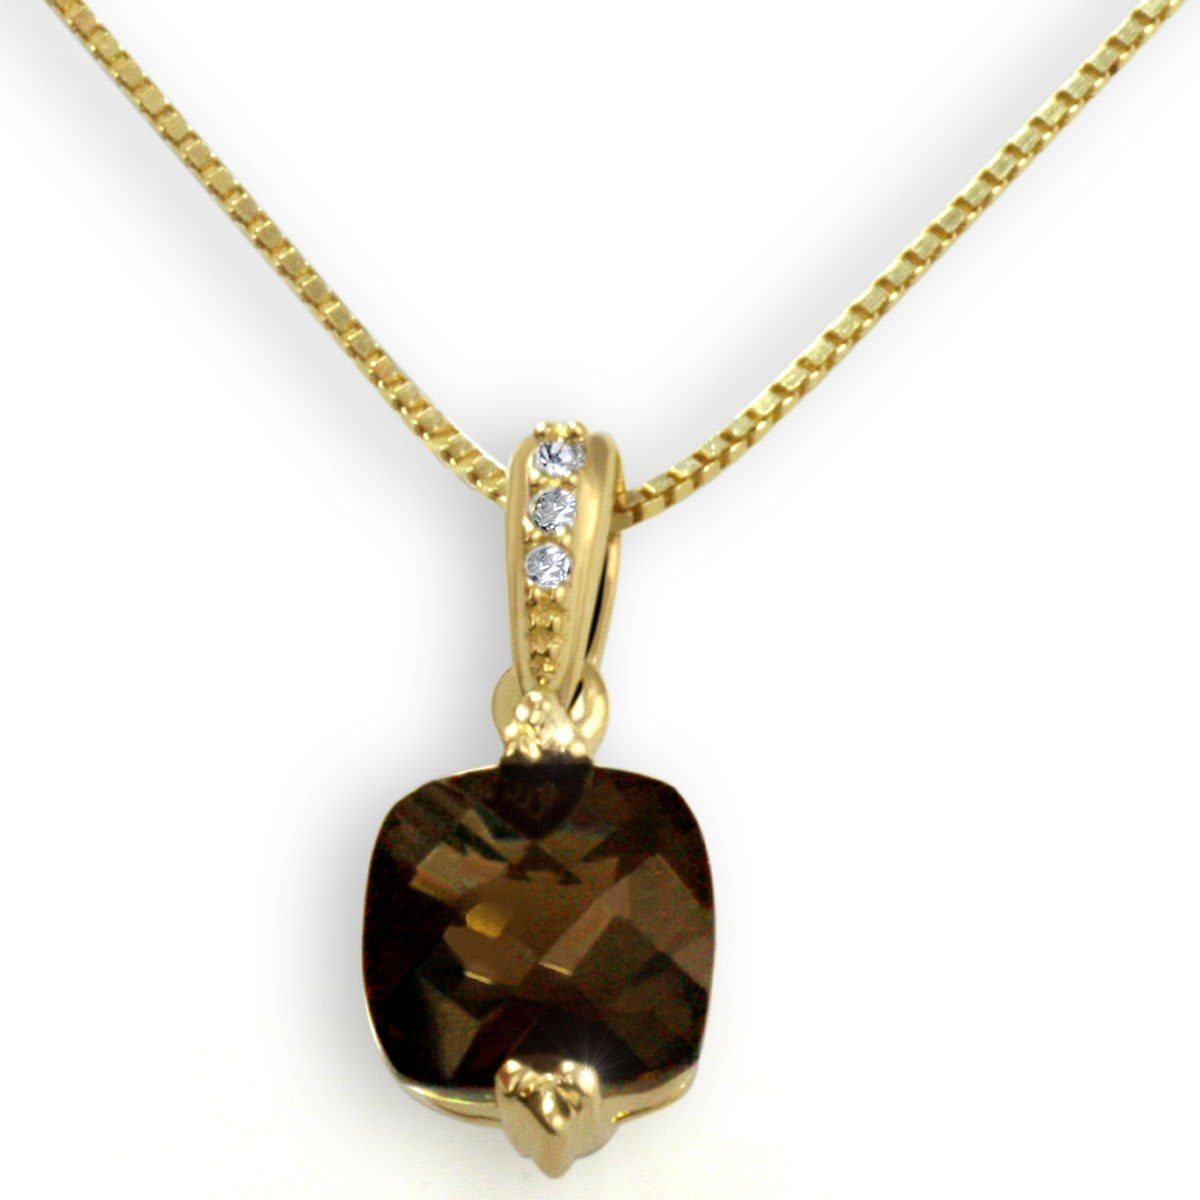 goldmaid Collier 333/- Gelbgold 1 Rauchquarz 3 Diamanten 0,02 ct.